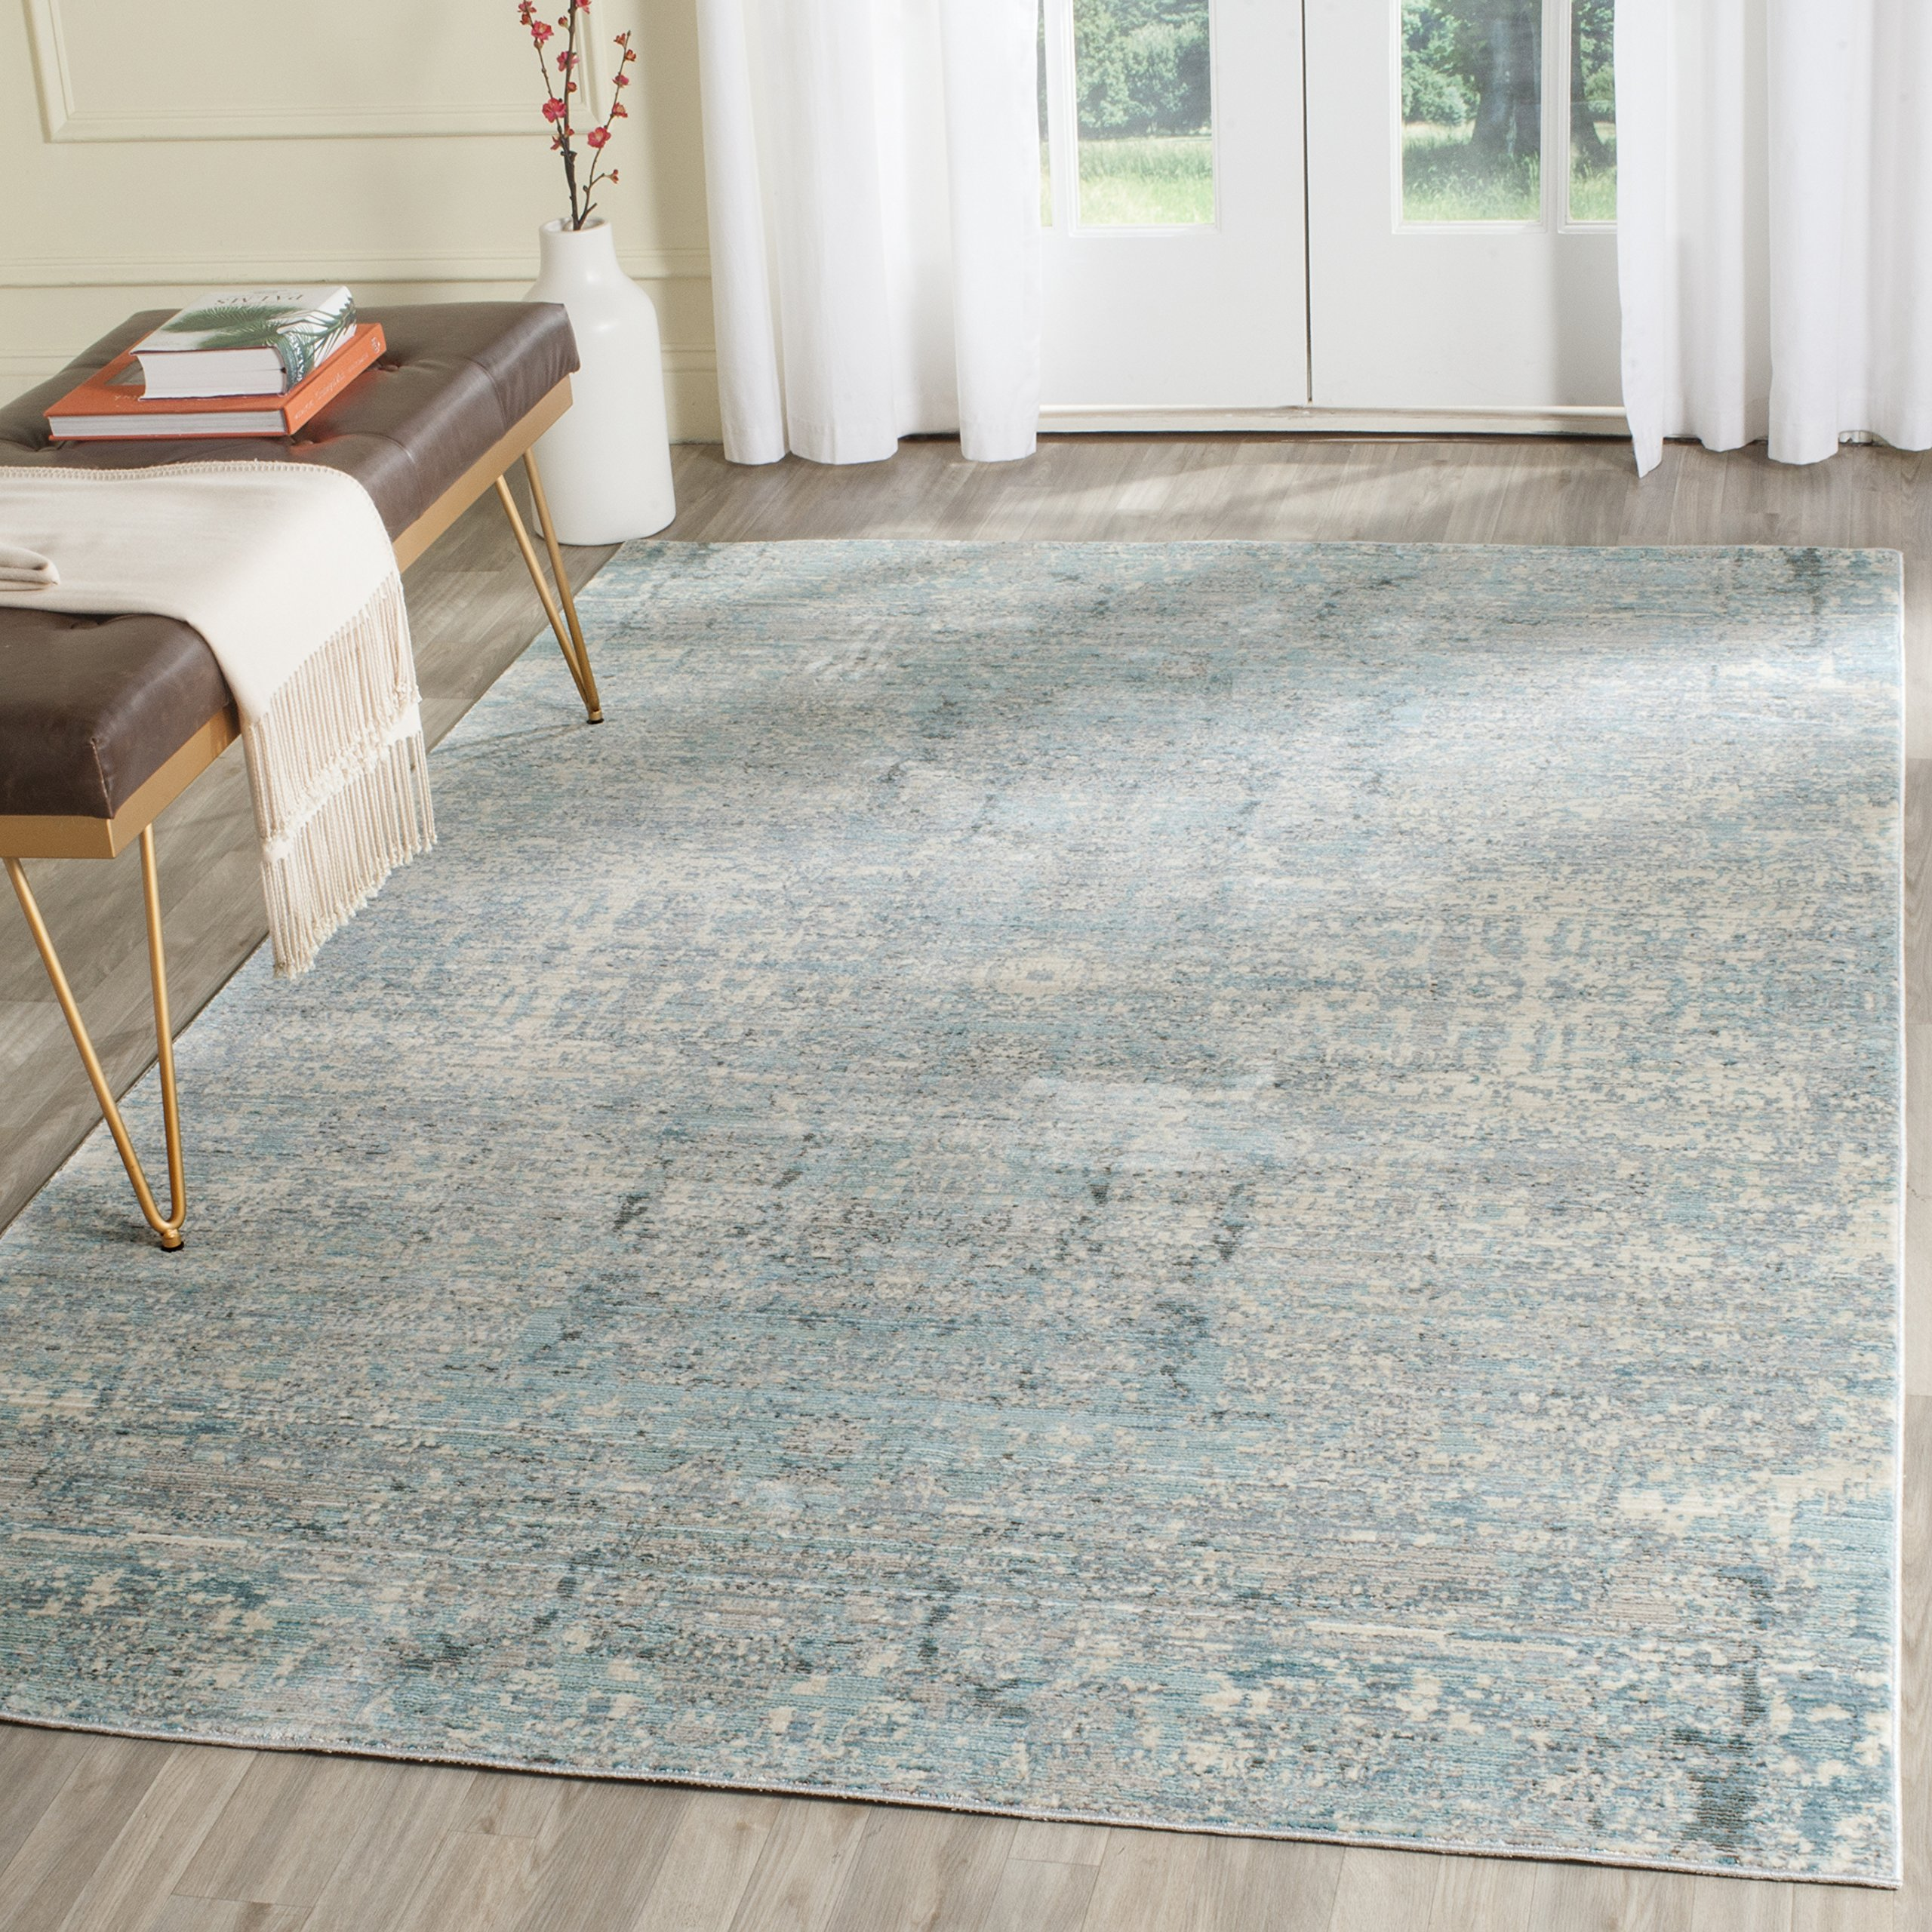 Safavieh Mystique Collection MYS971A Vintage Watercolor Teal and Multi Distressed Area Rug (8' x 10')